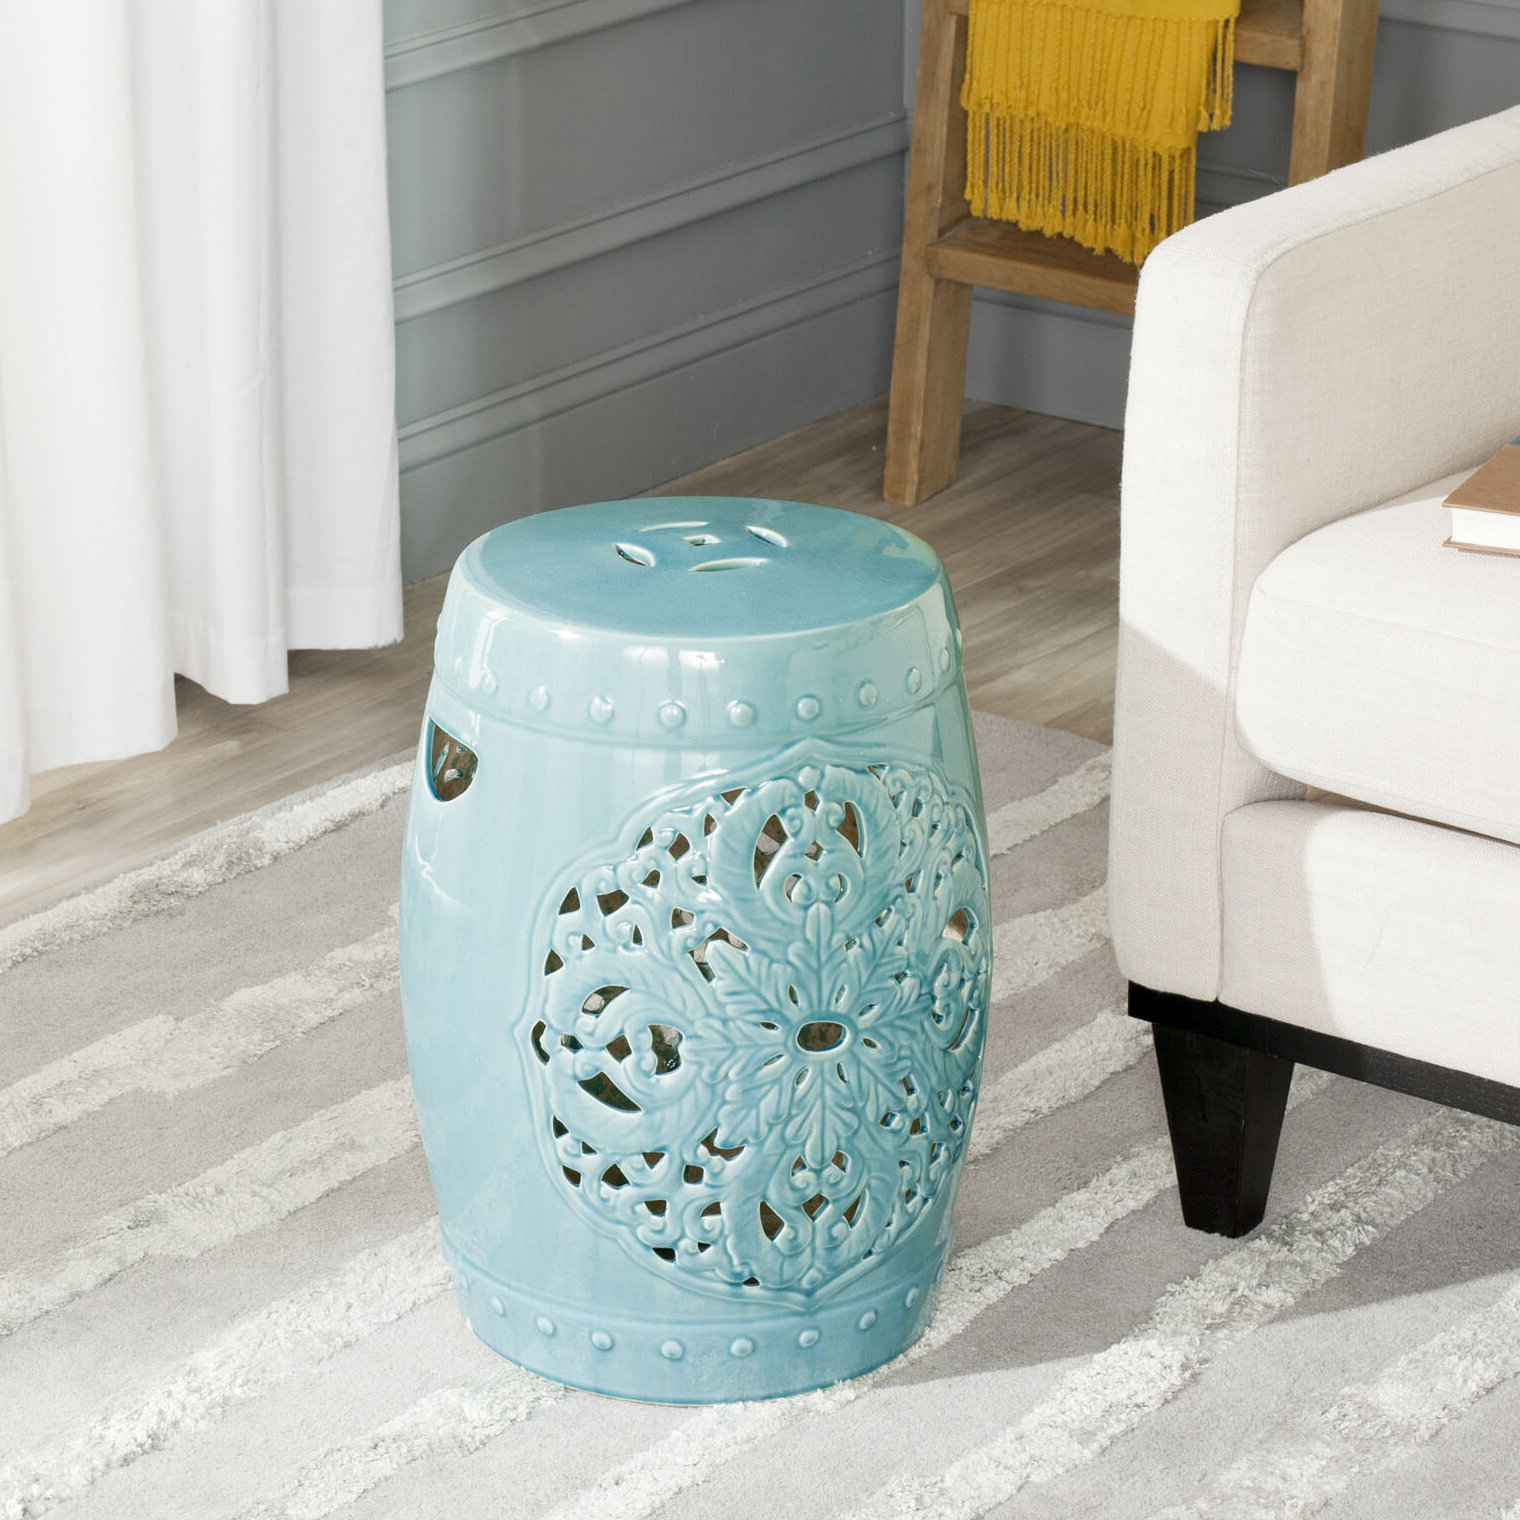 Amettes Garden Stools Throughout Well Known Nagle Ceramic Garden Stool (View 16 of 30)